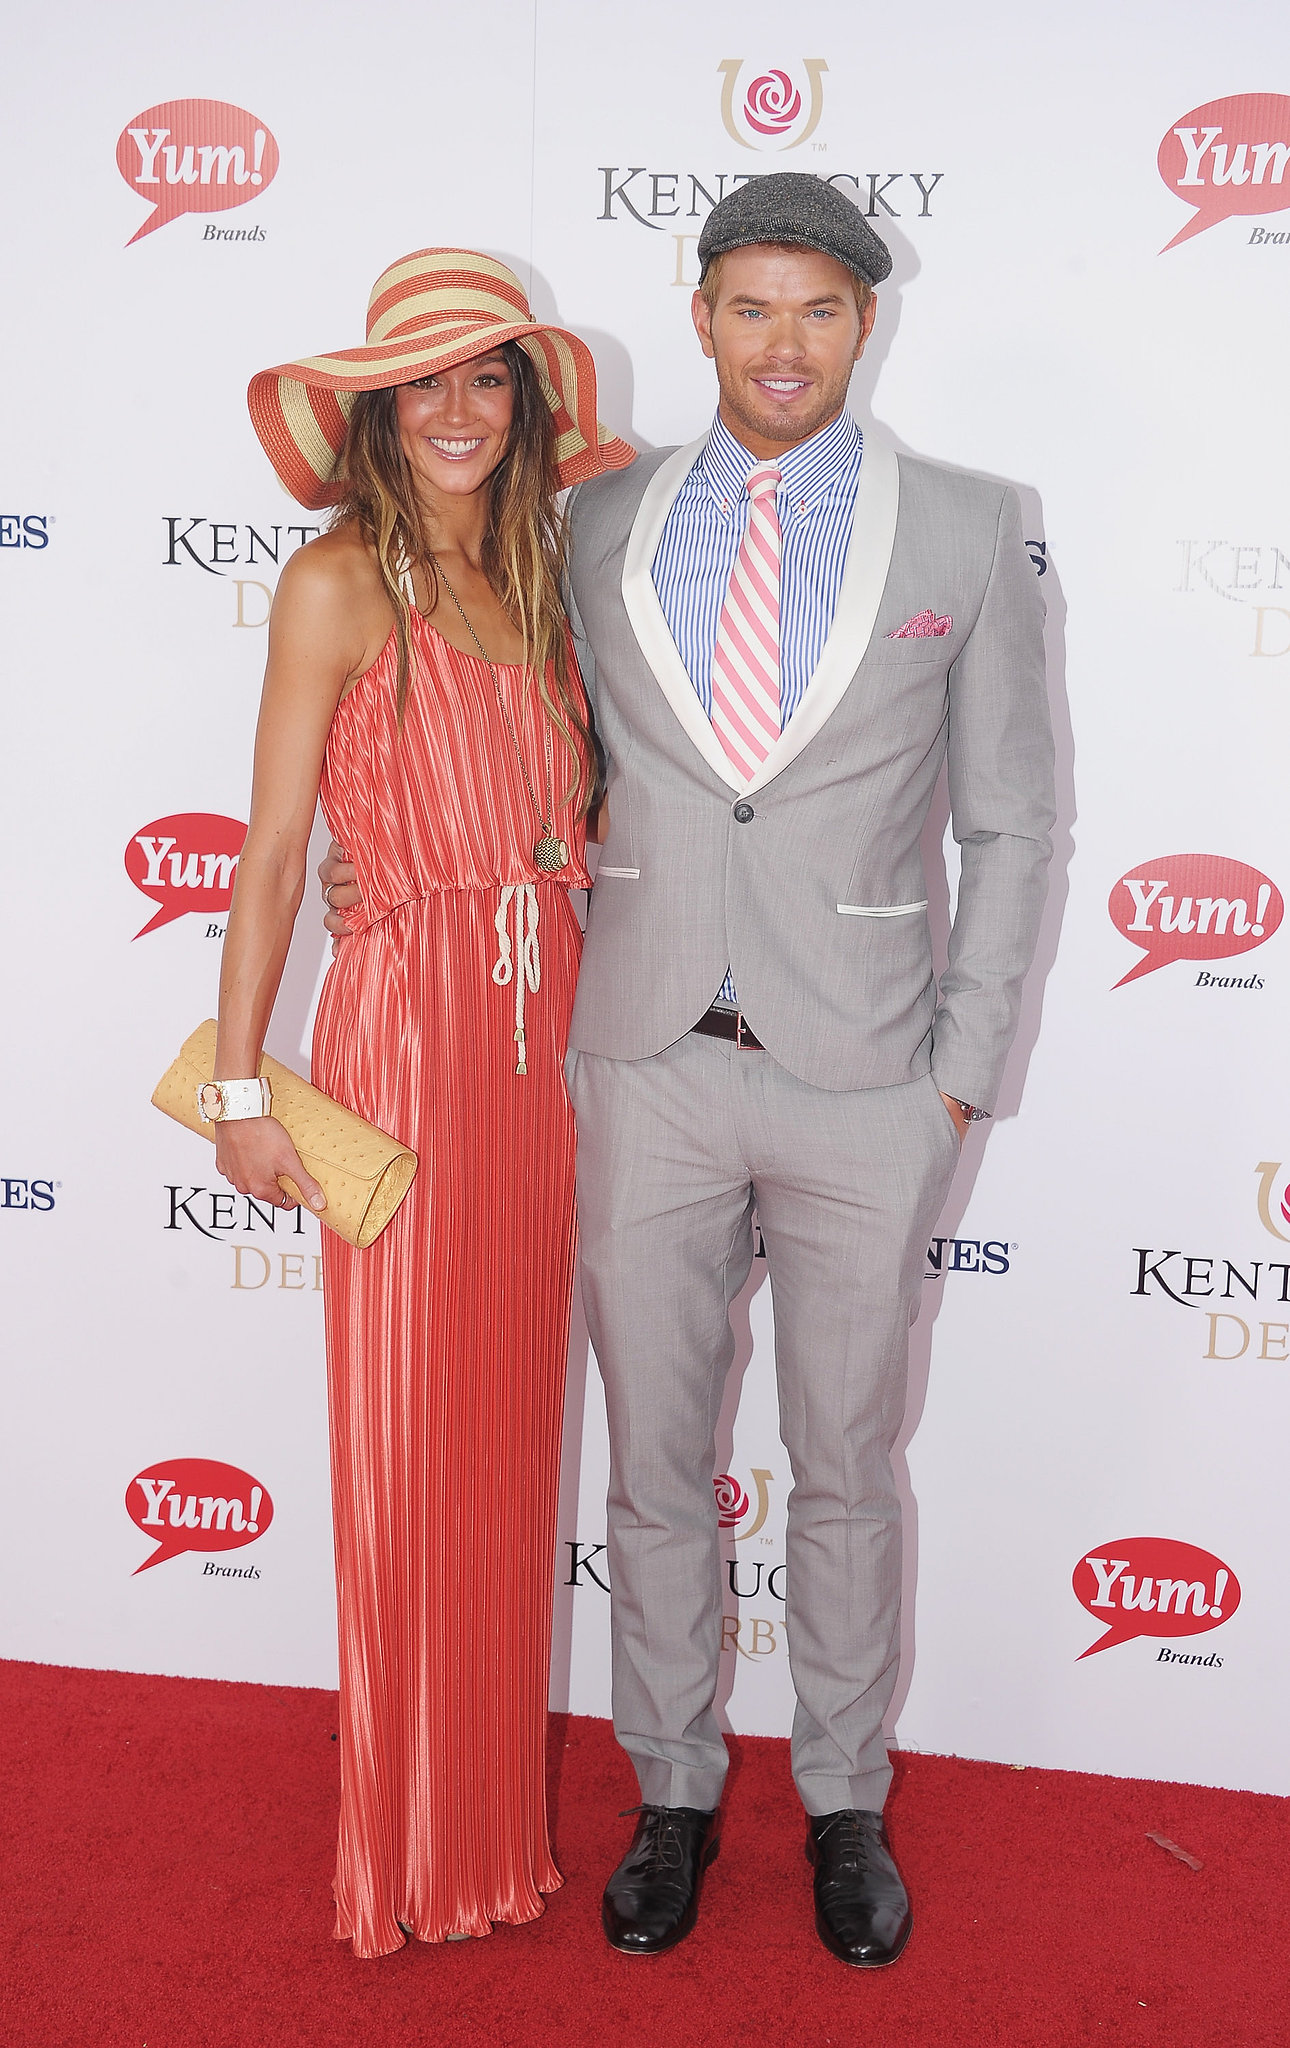 lutz dating The following winter he met aussie actress sharni vinson at a reading for step up 3d and they began dating kellan lutz: related content mar 02.